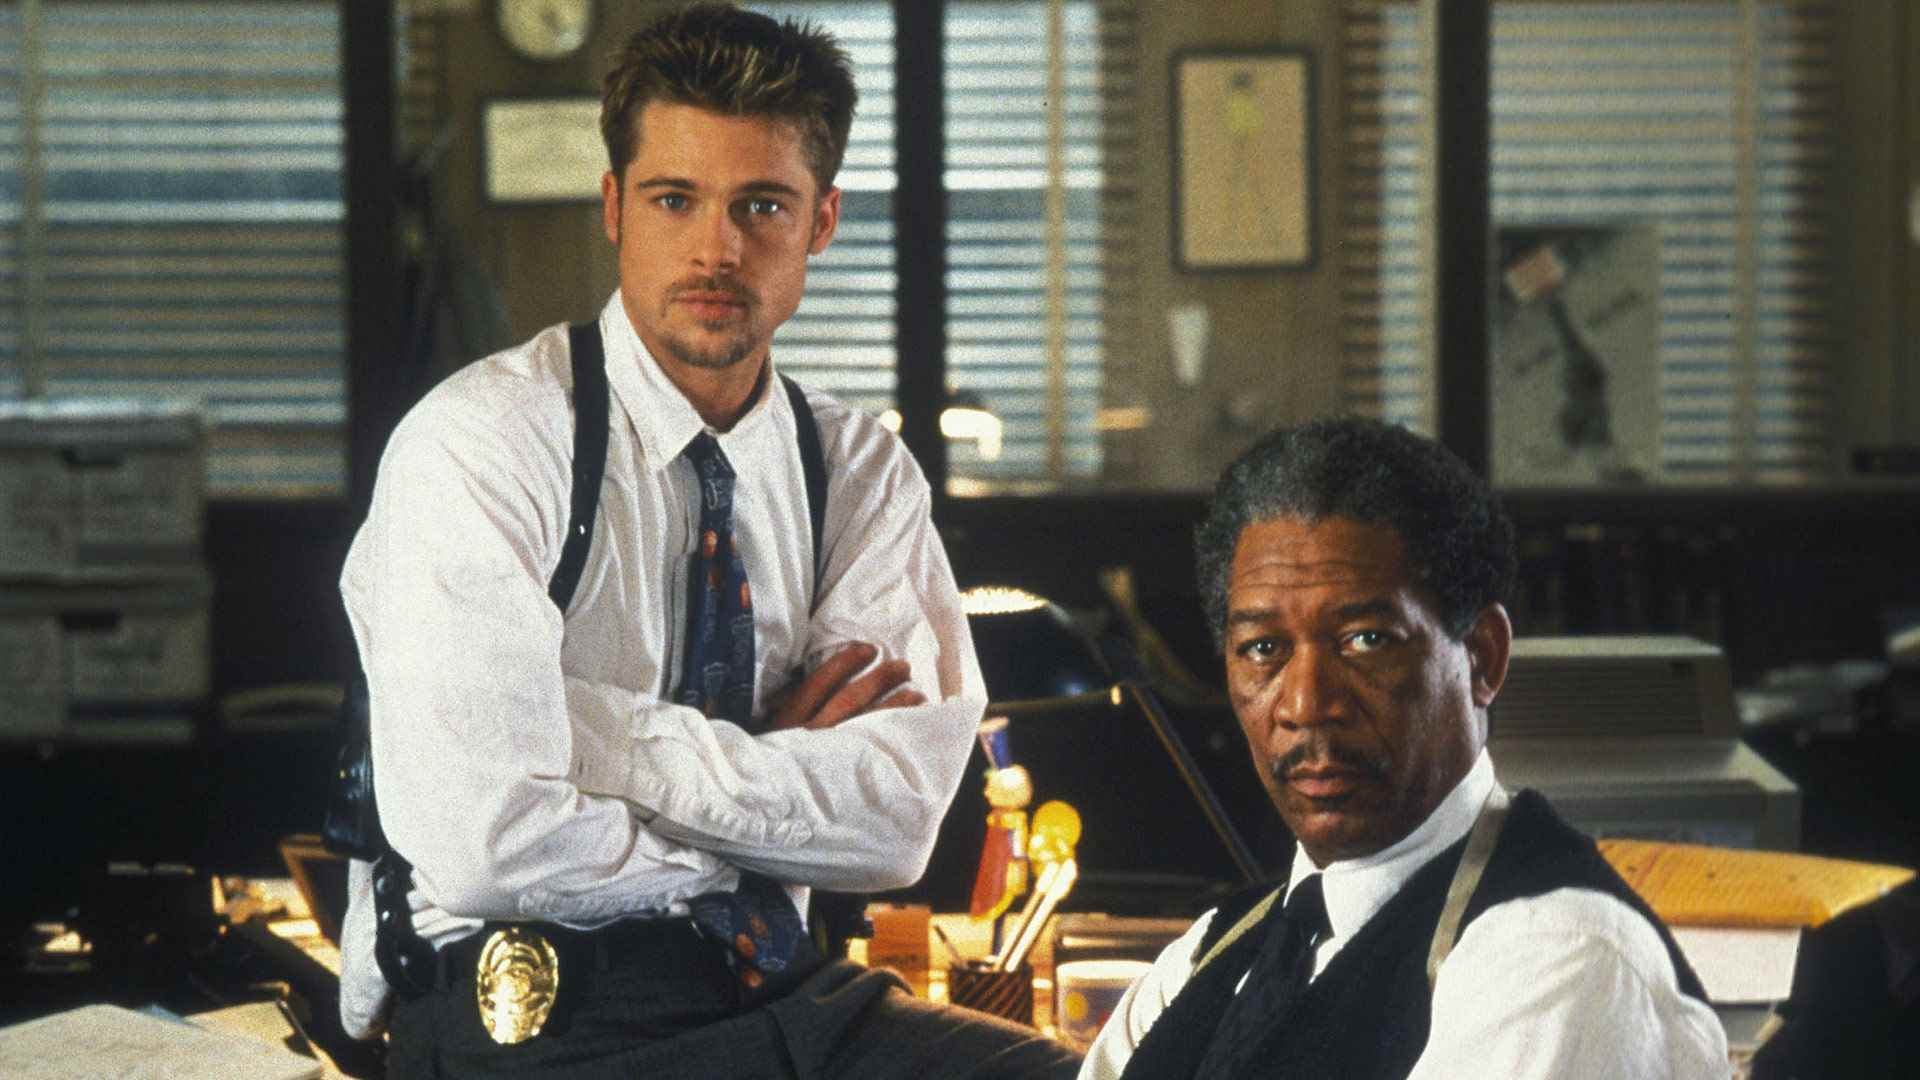 (l to r) Detectives David Mills (Brad Pitt) and William Somerset (Morgan Freeman) in Se7en (1995)